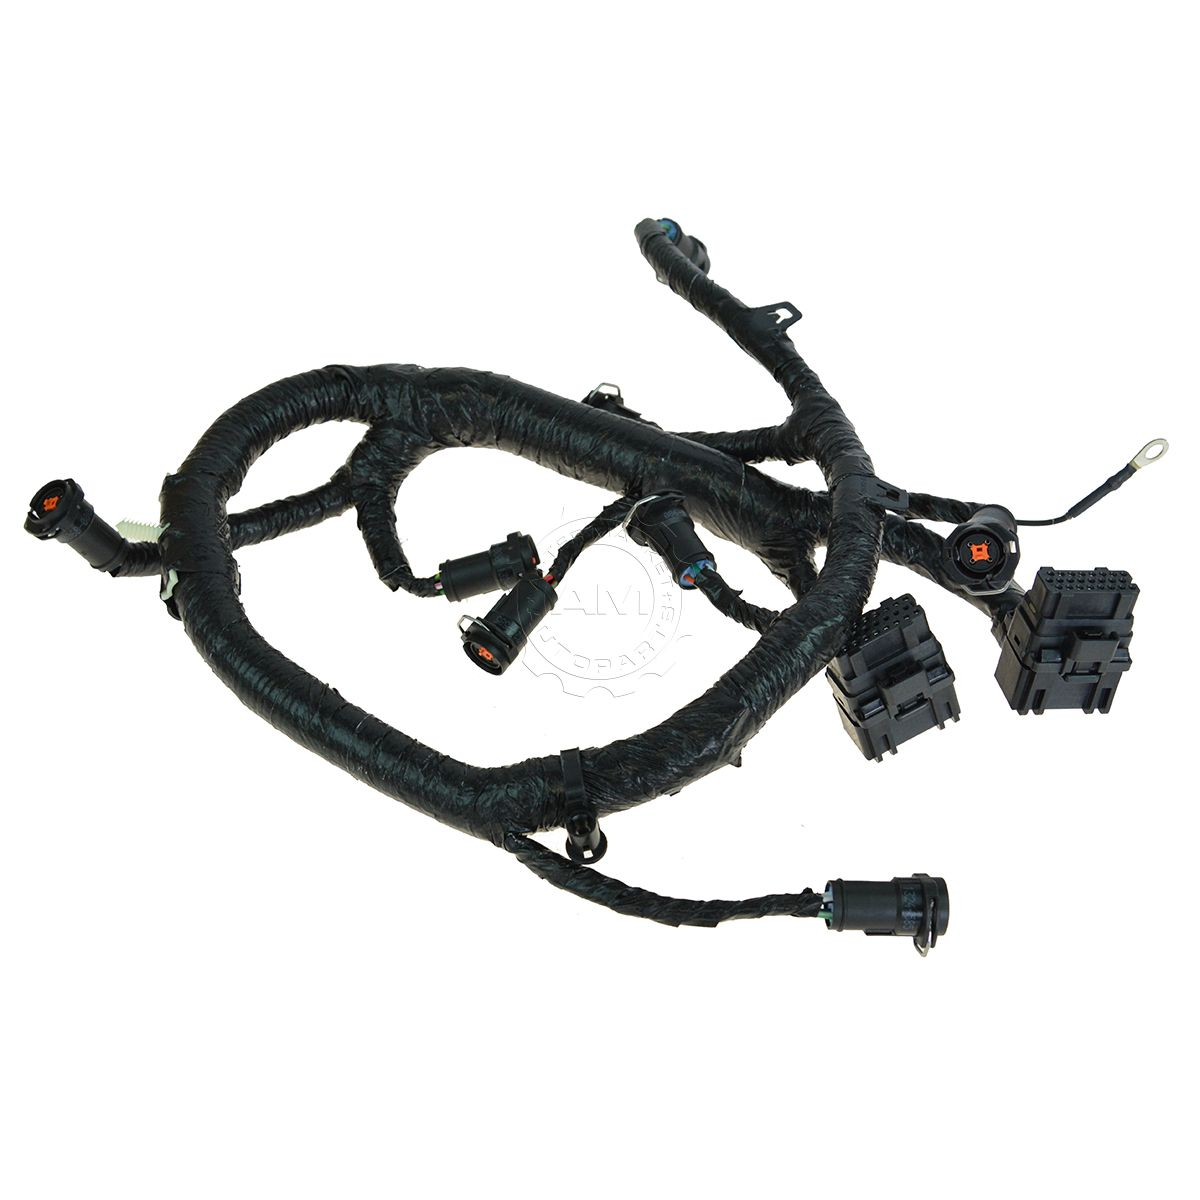 oem fuel injector wiring harness for 05-07 ford diesel truck